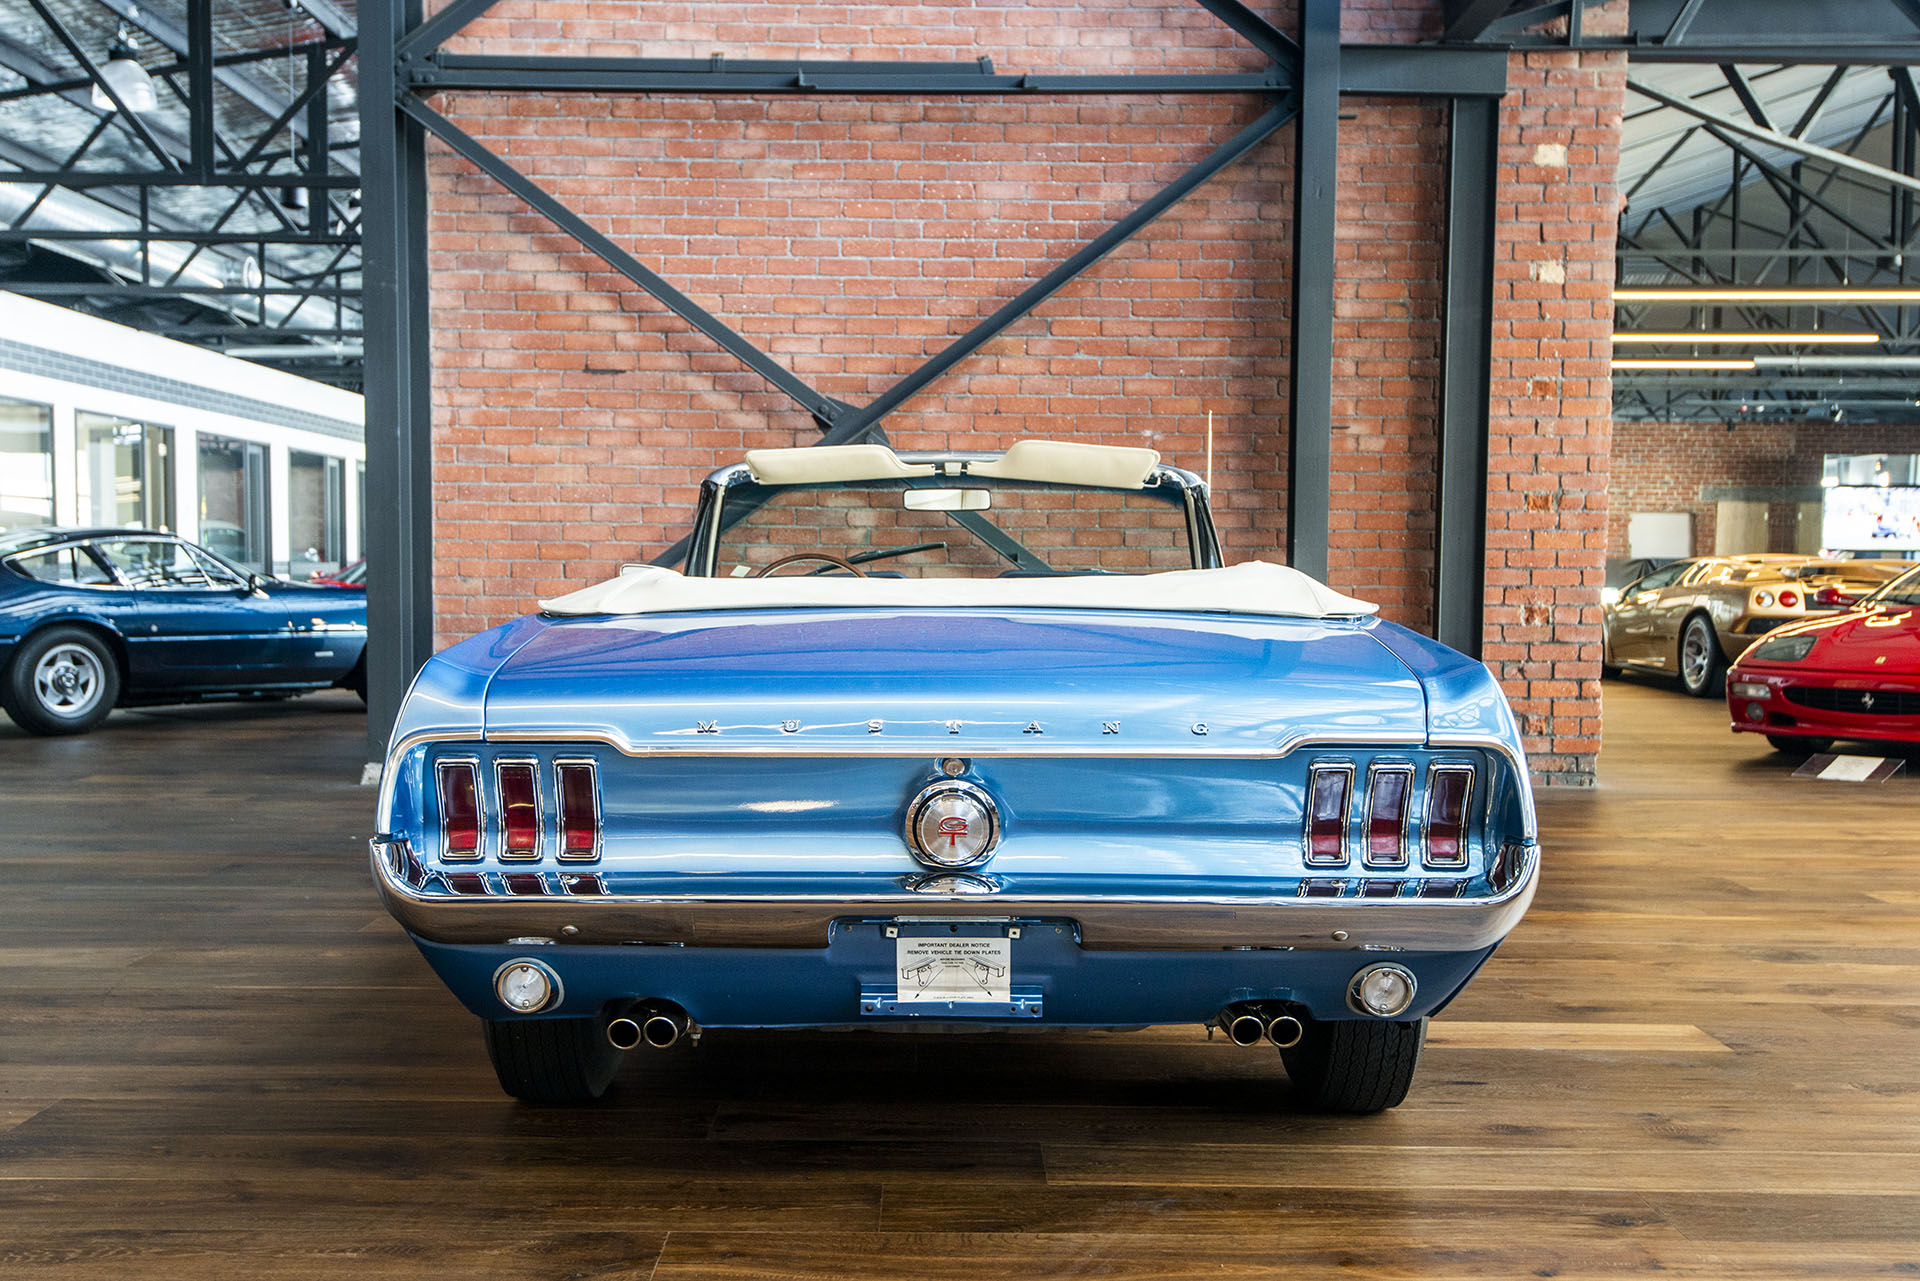 Ford Mustang Convertible Blue 18 Richmonds Classic And Prestige Cars Storage And Sales Adelaide Australia